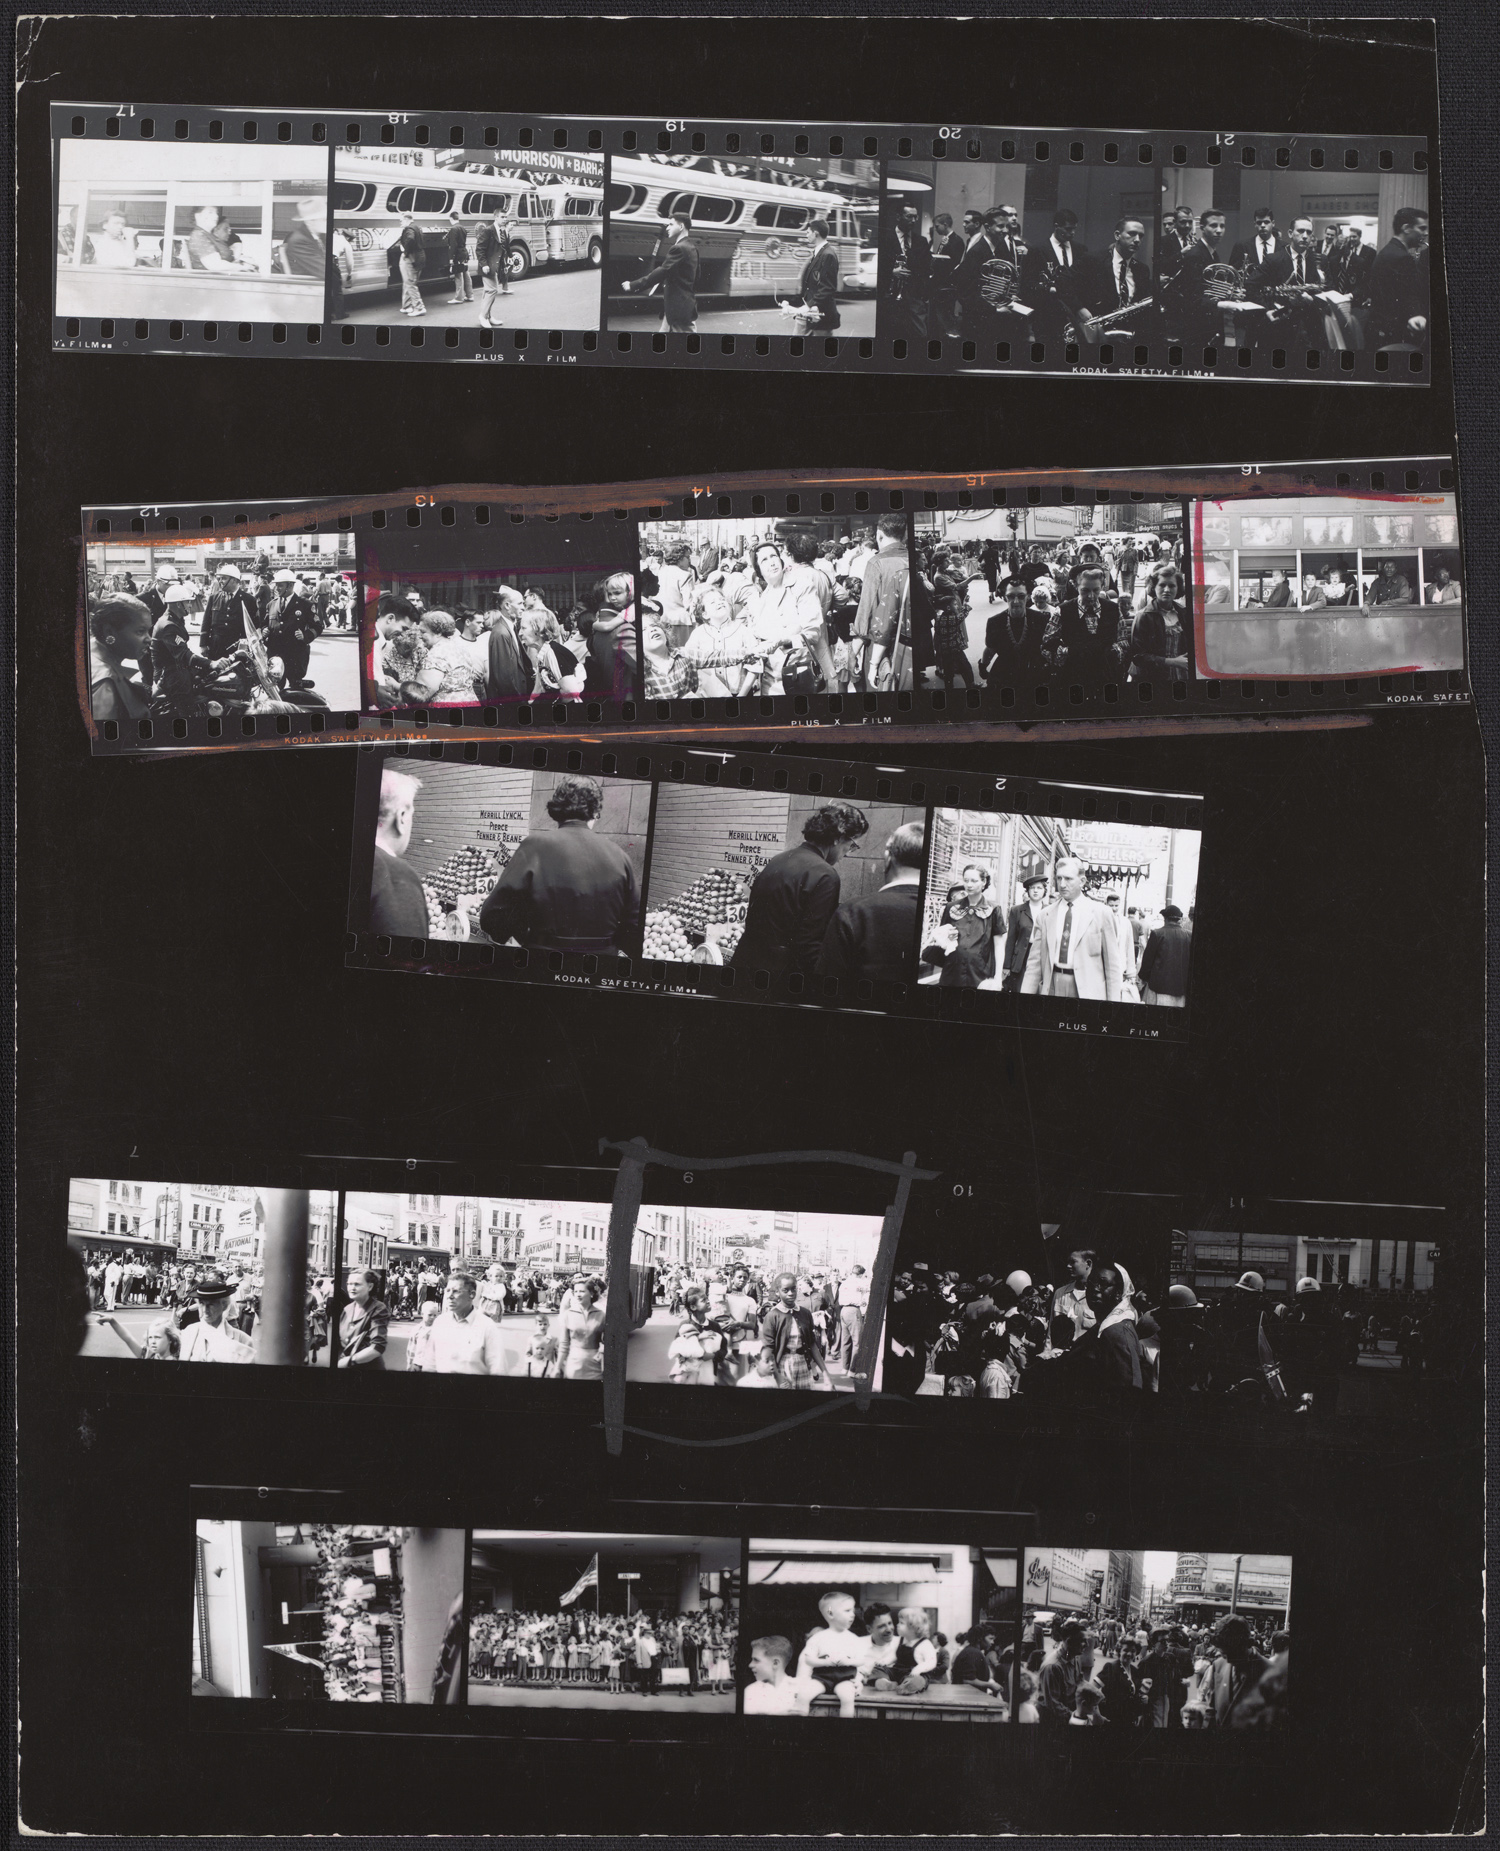 Robert Frank, Guggenheim 340/Americans 18 and 19—New Orleans, November 1955, 1955; contact sheet; 10 x 8 1/16 in.; National Gallery of Art, Washington, Robert Frank Collection, gift of Robert Frank; © Robert Frank